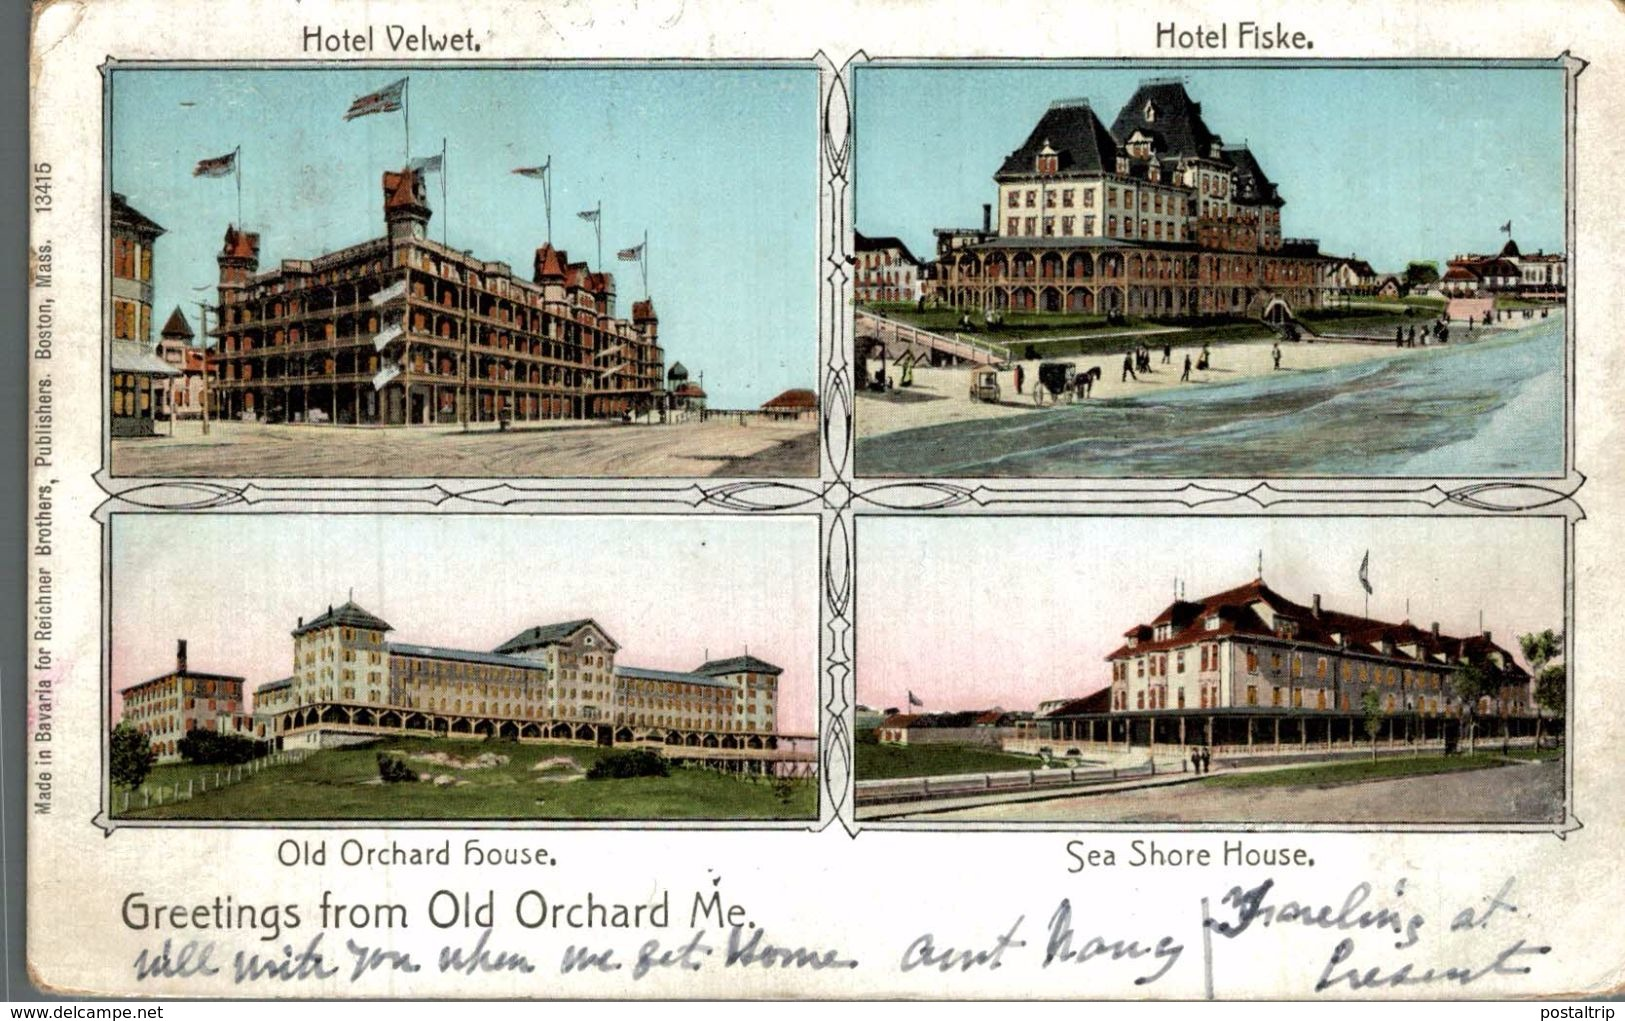 GREETINGS FROM OLD ORCHARD ME. - United States